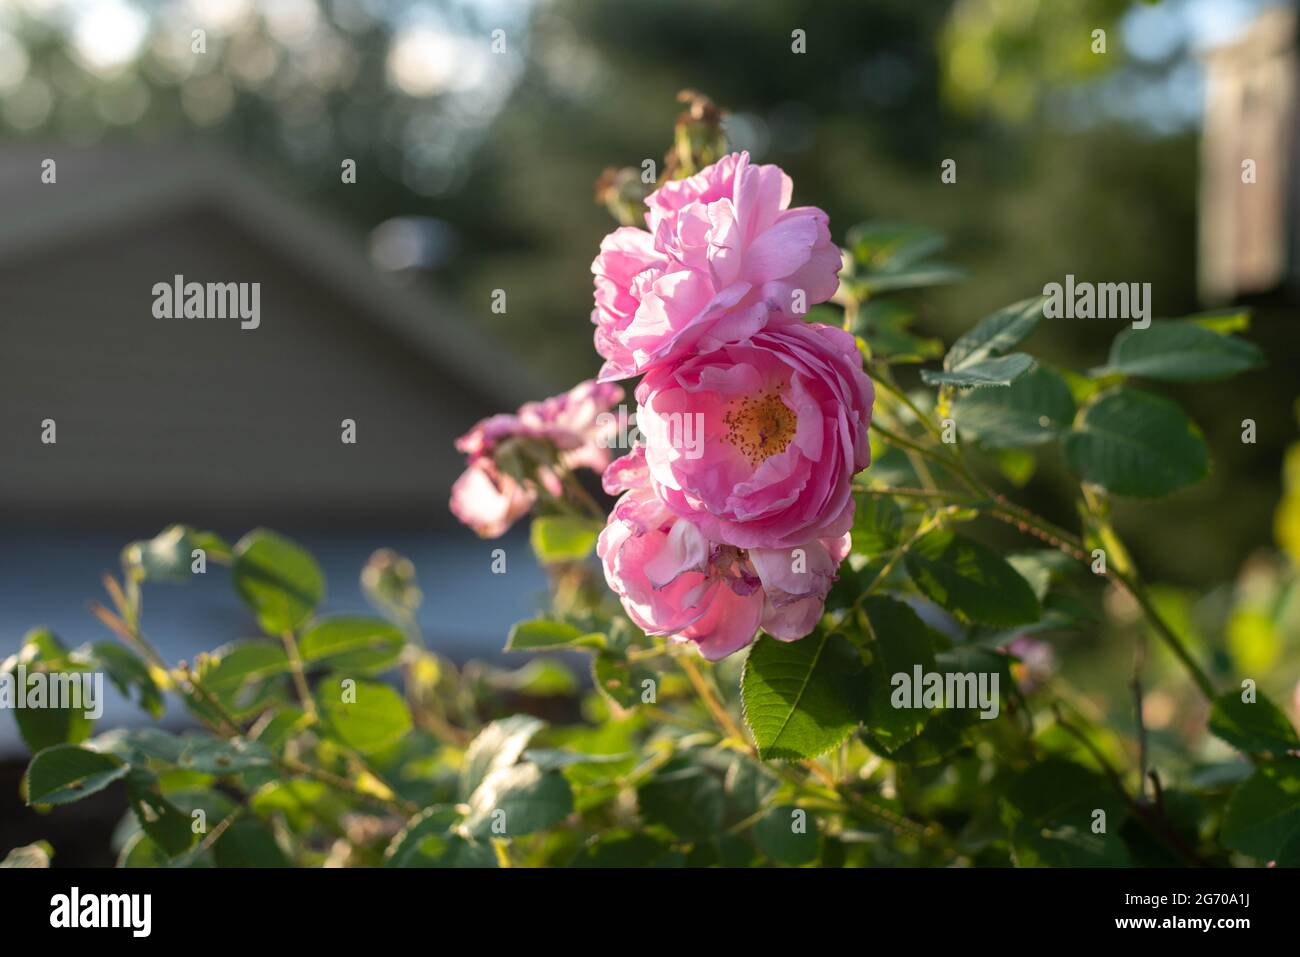 Wild roses on a bush in the country. Stock Photo